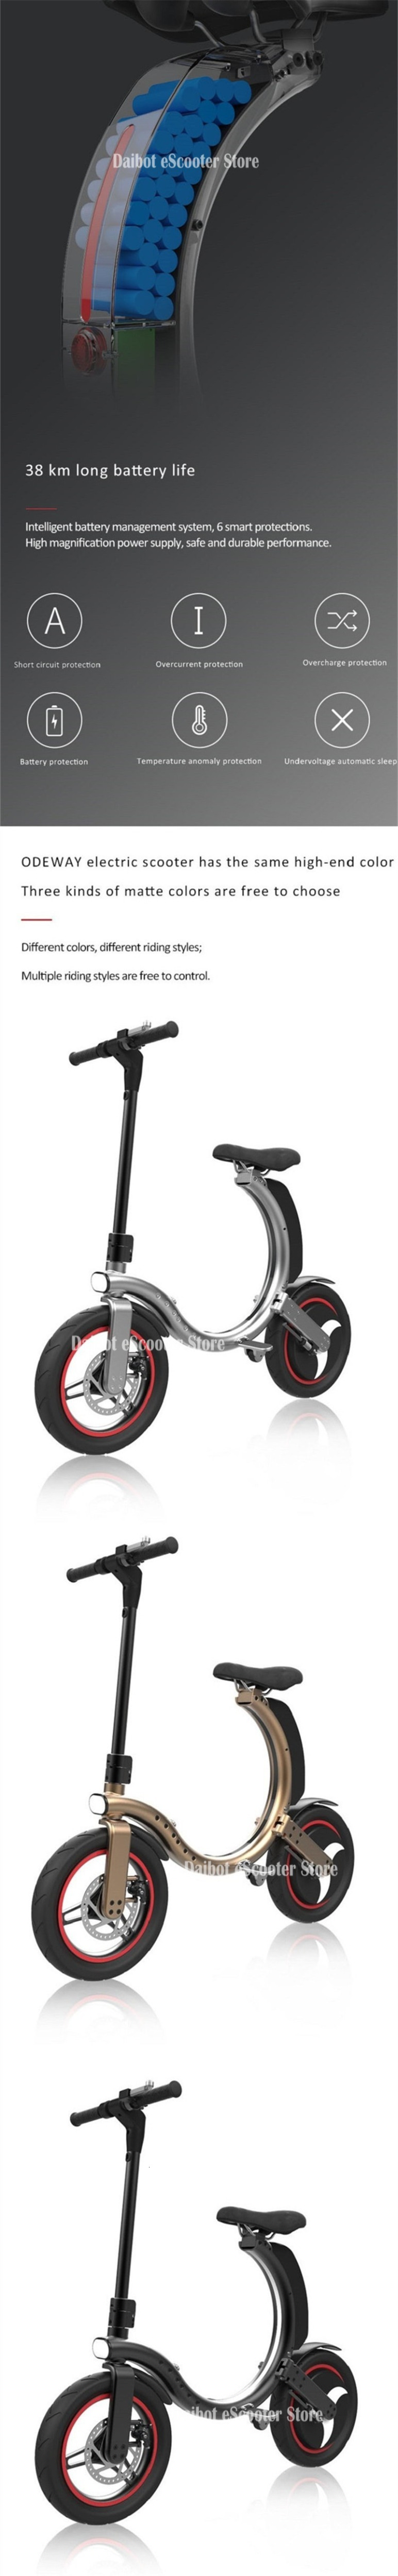 14 Inch Folding Electric Scooter 2 Wheel Electric Scooters 500W Portable Electic Bike with APP (8)